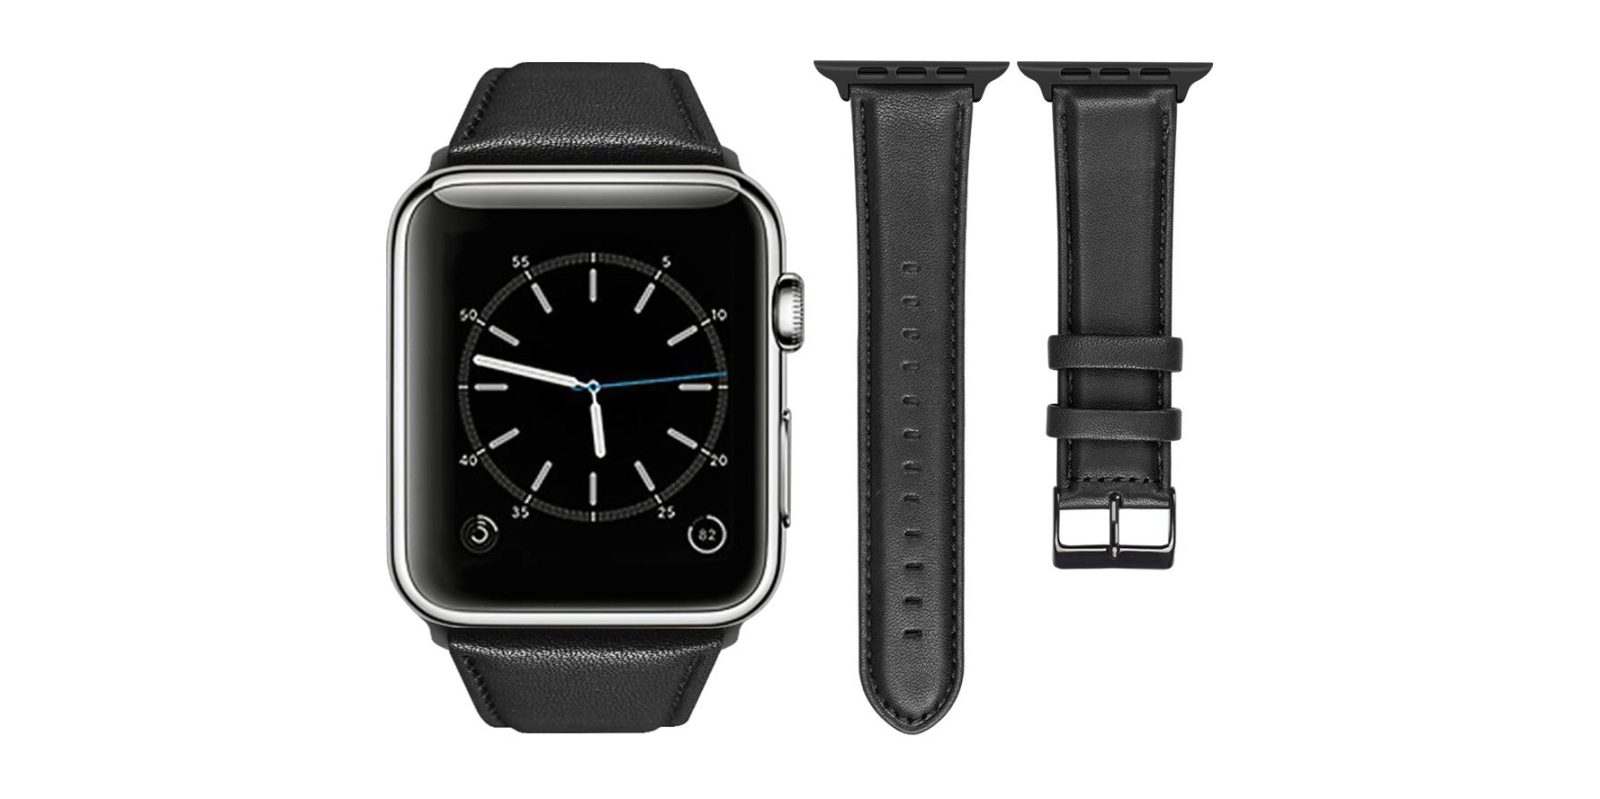 Amazon will sell you a leather Apple Watch band for just  8 (Reg.  15) 49f64283e